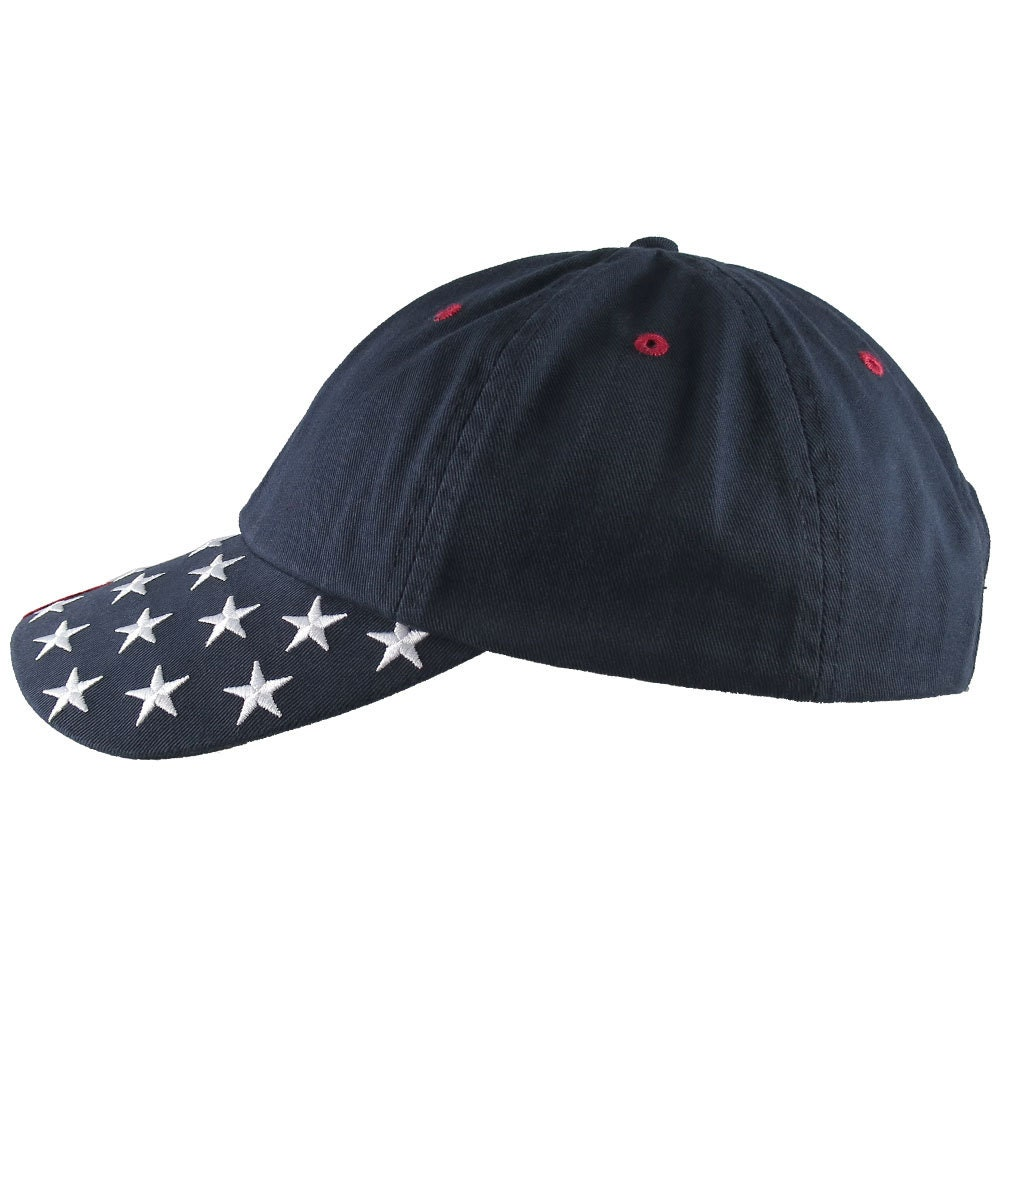 c62efc6b NYSE Hat Dow 30000 Stock Broker Custom Embroidery Adjustable Navy Blue  Unstructured Stars and Stripes Baseball Cap + Personalization Options